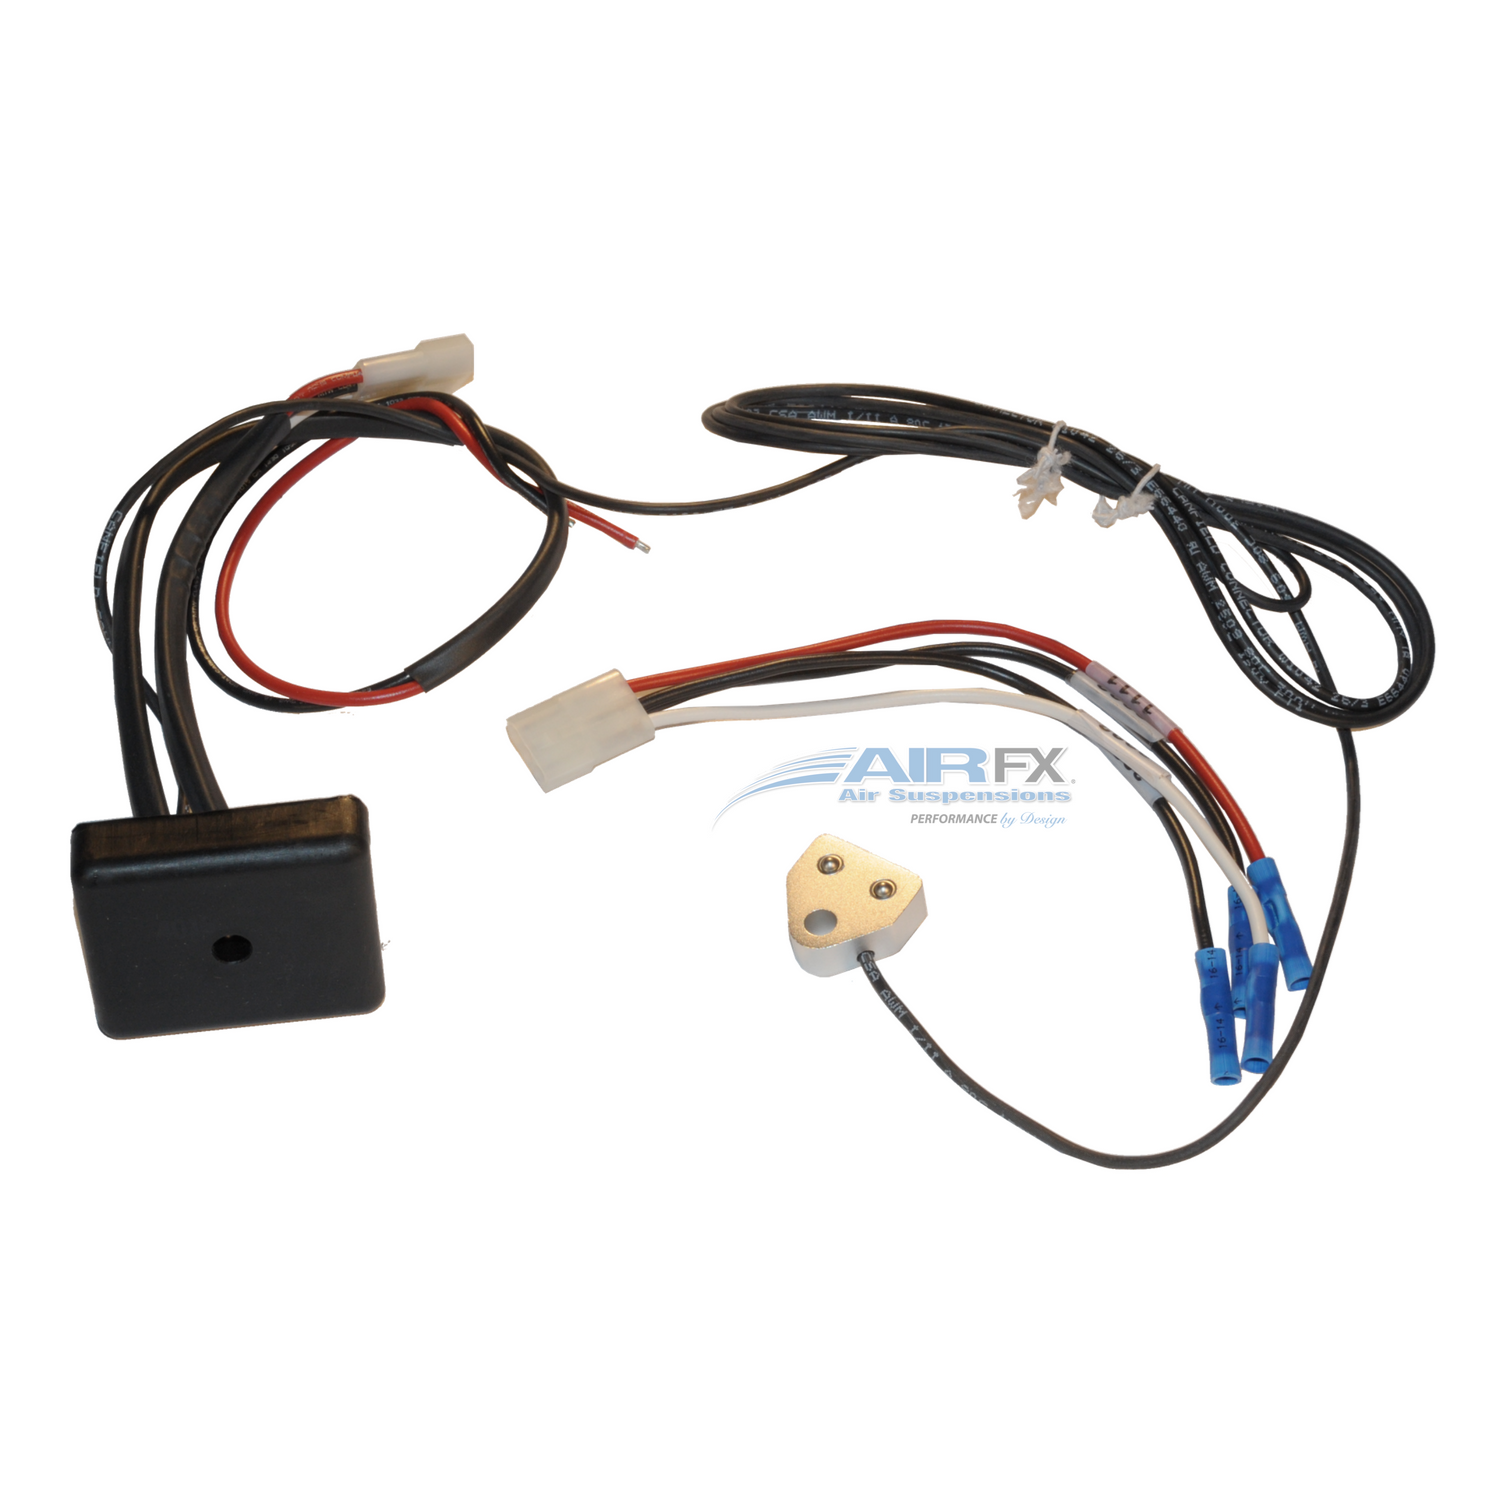 Micro Button Harness, nickel platted (FXA-1010-MB-1) [+$400.00]